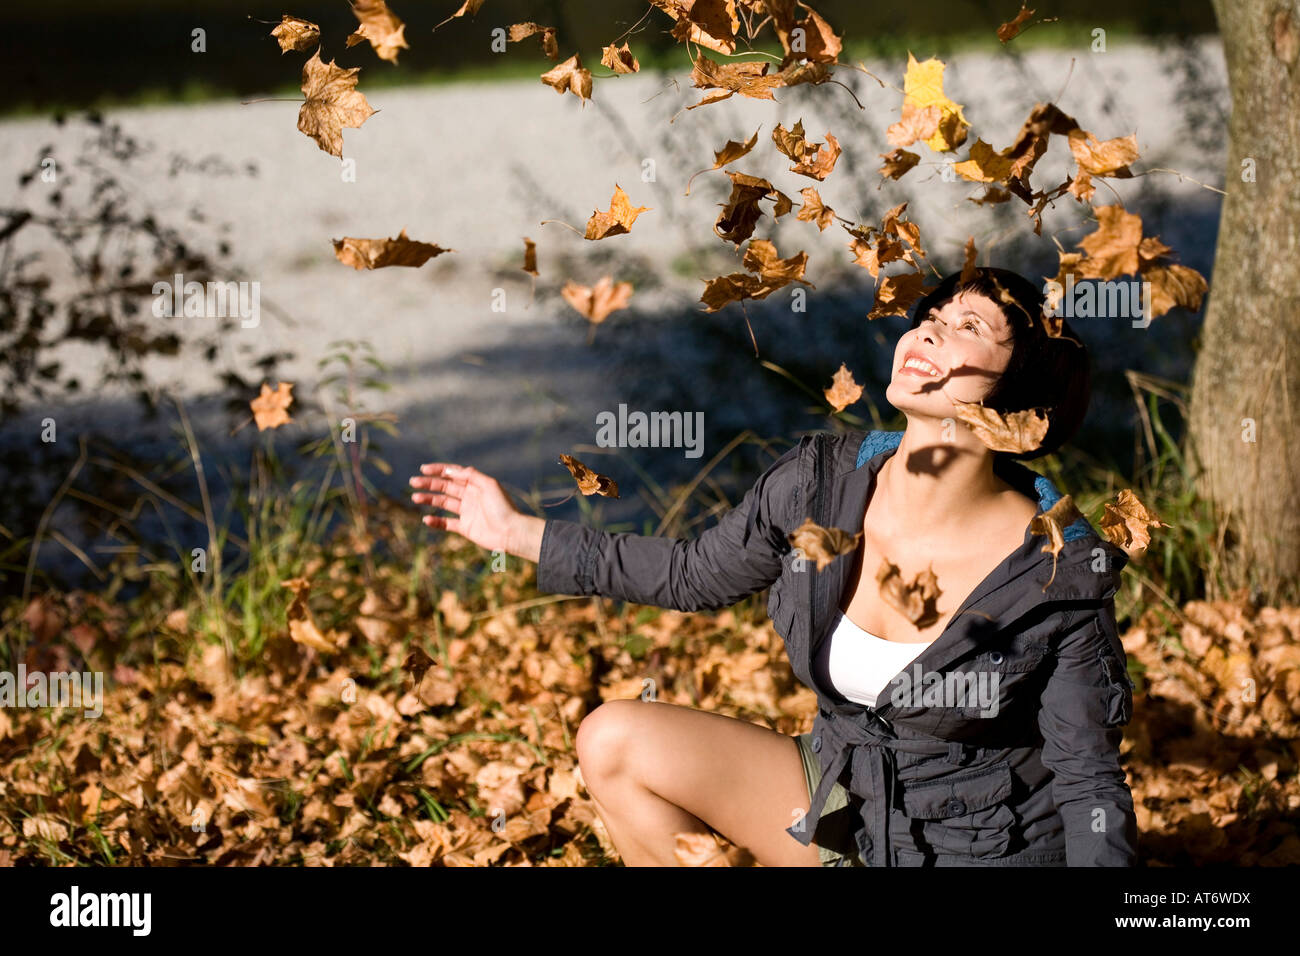 Germany, Bavaria, Young woman looking at falling Autumn leaves, portrait - Stock Image